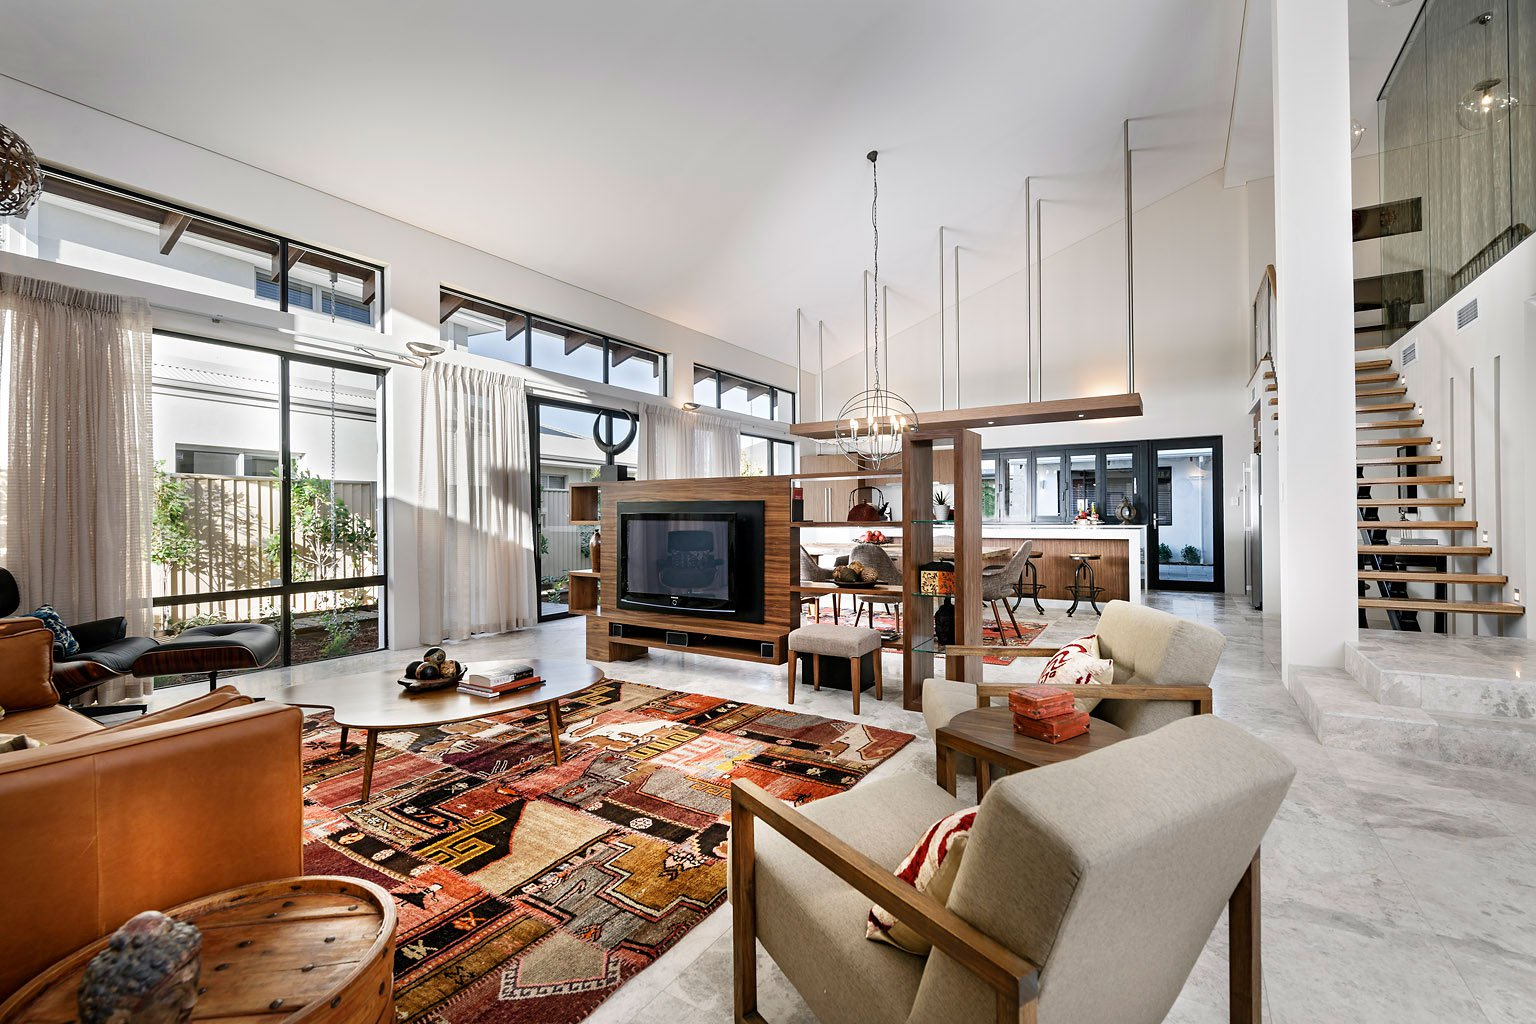 The-Bletchley-Loft-10